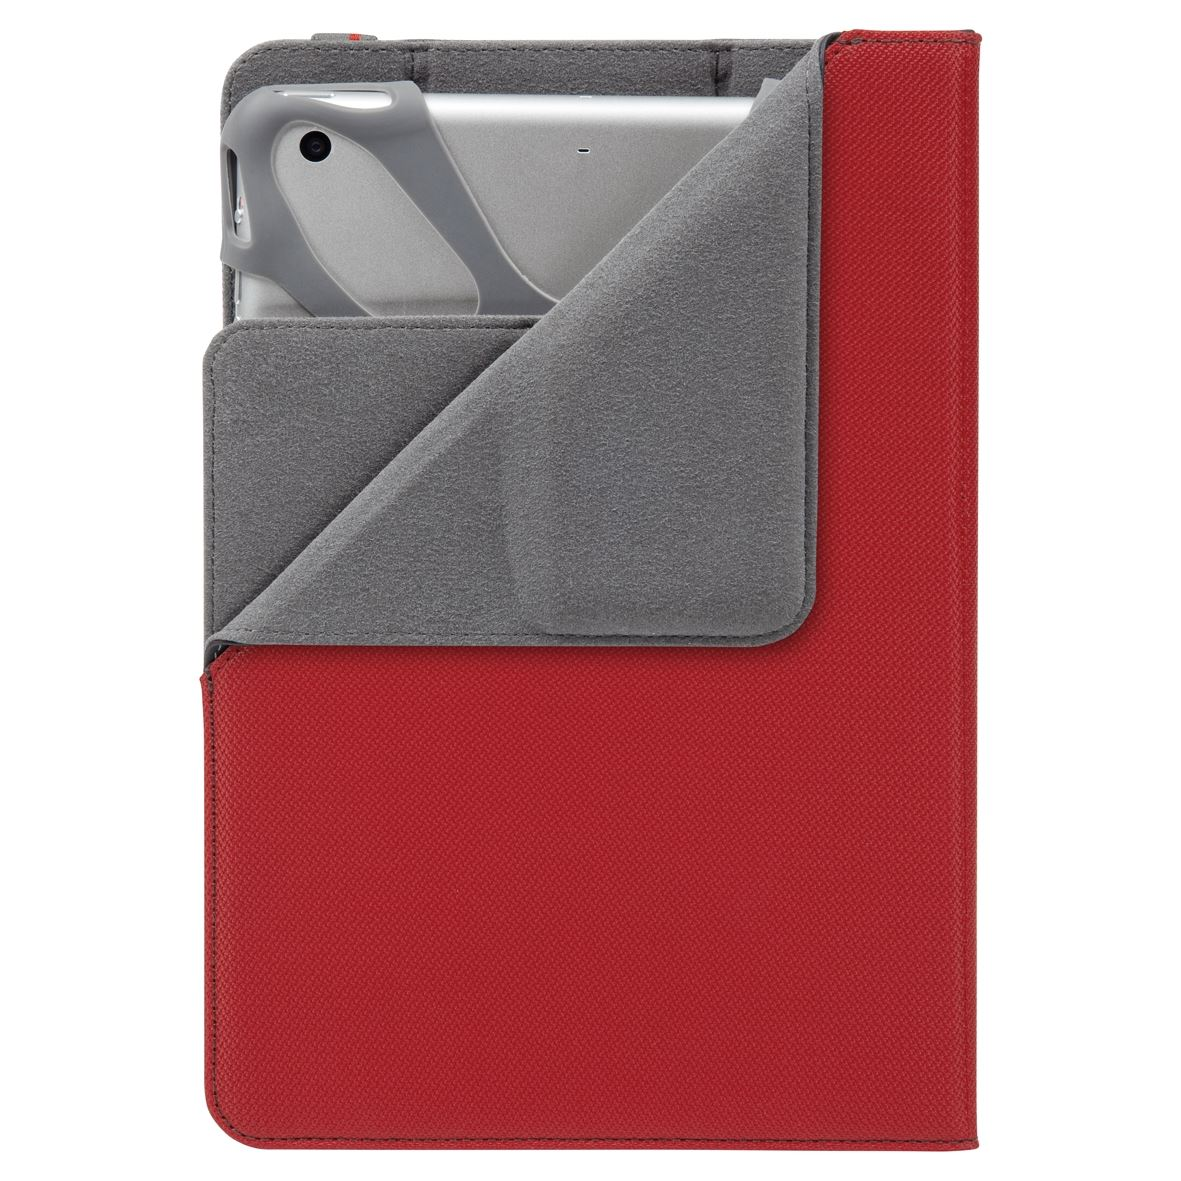 "Targus Fit N' Grip Universal Case for 9-10"" Tablets - Red"